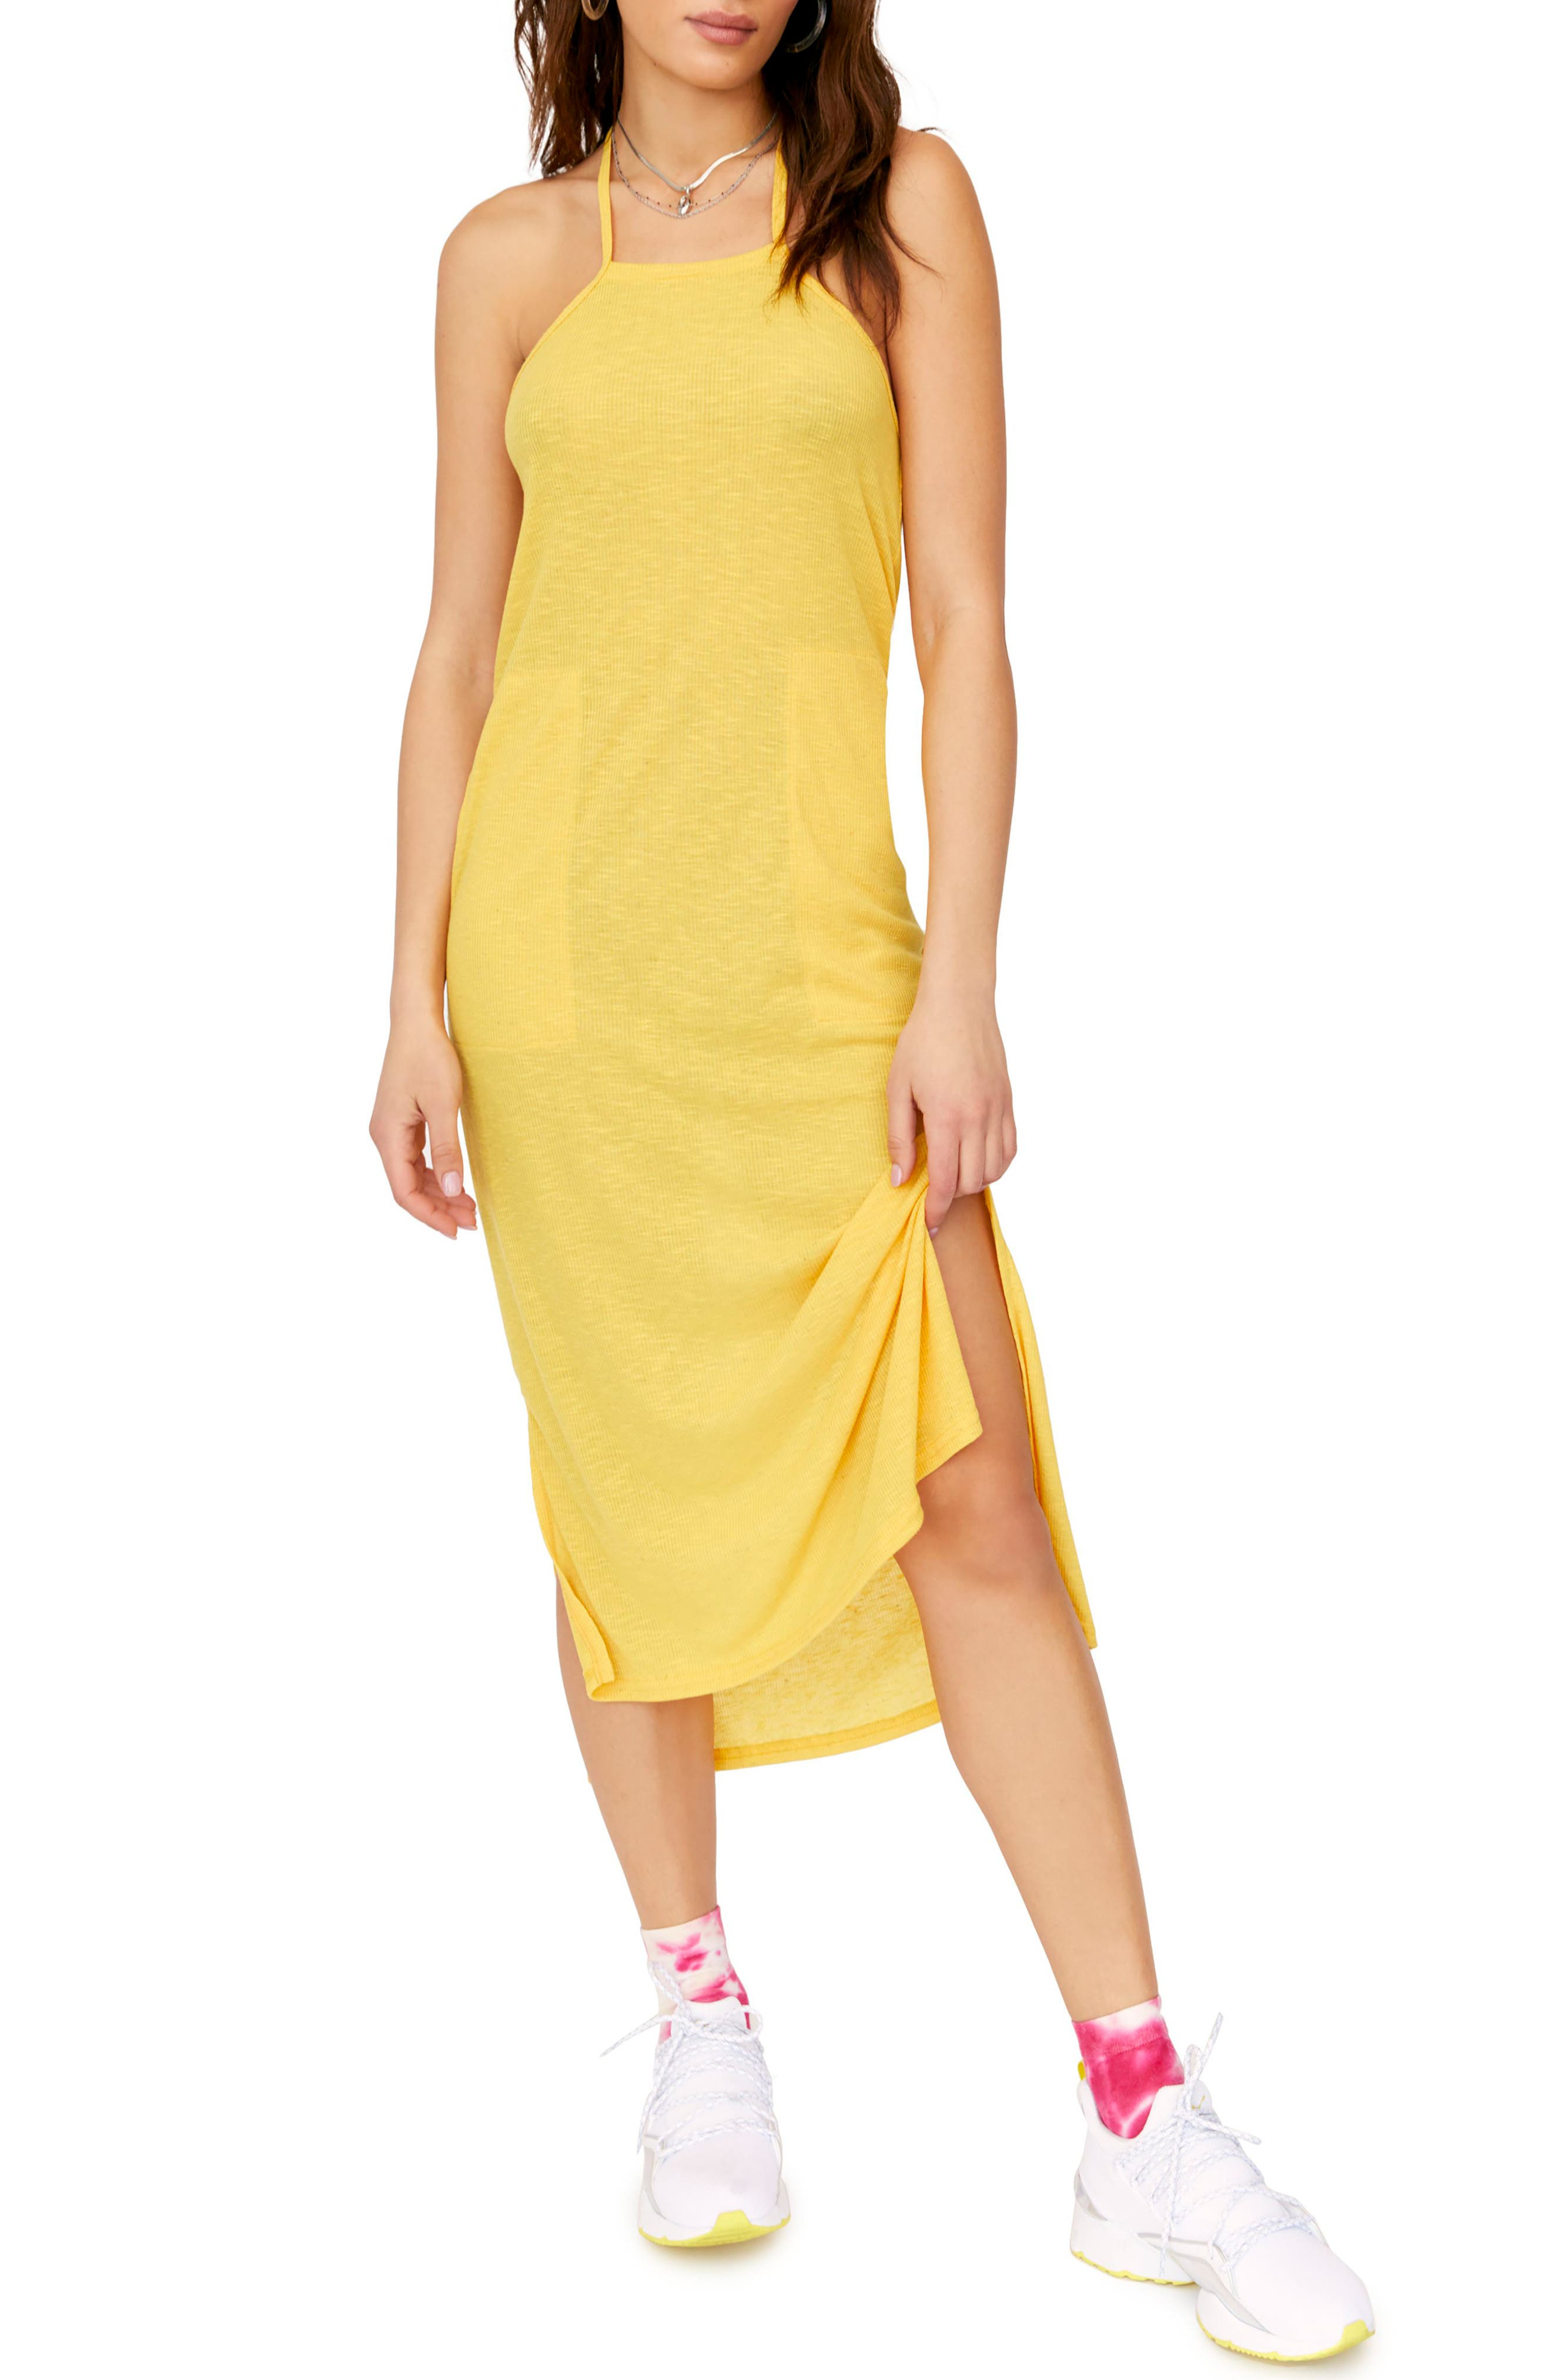 Endless Summer By Free People Orchid Sleeveless Midi Dress, Yellow